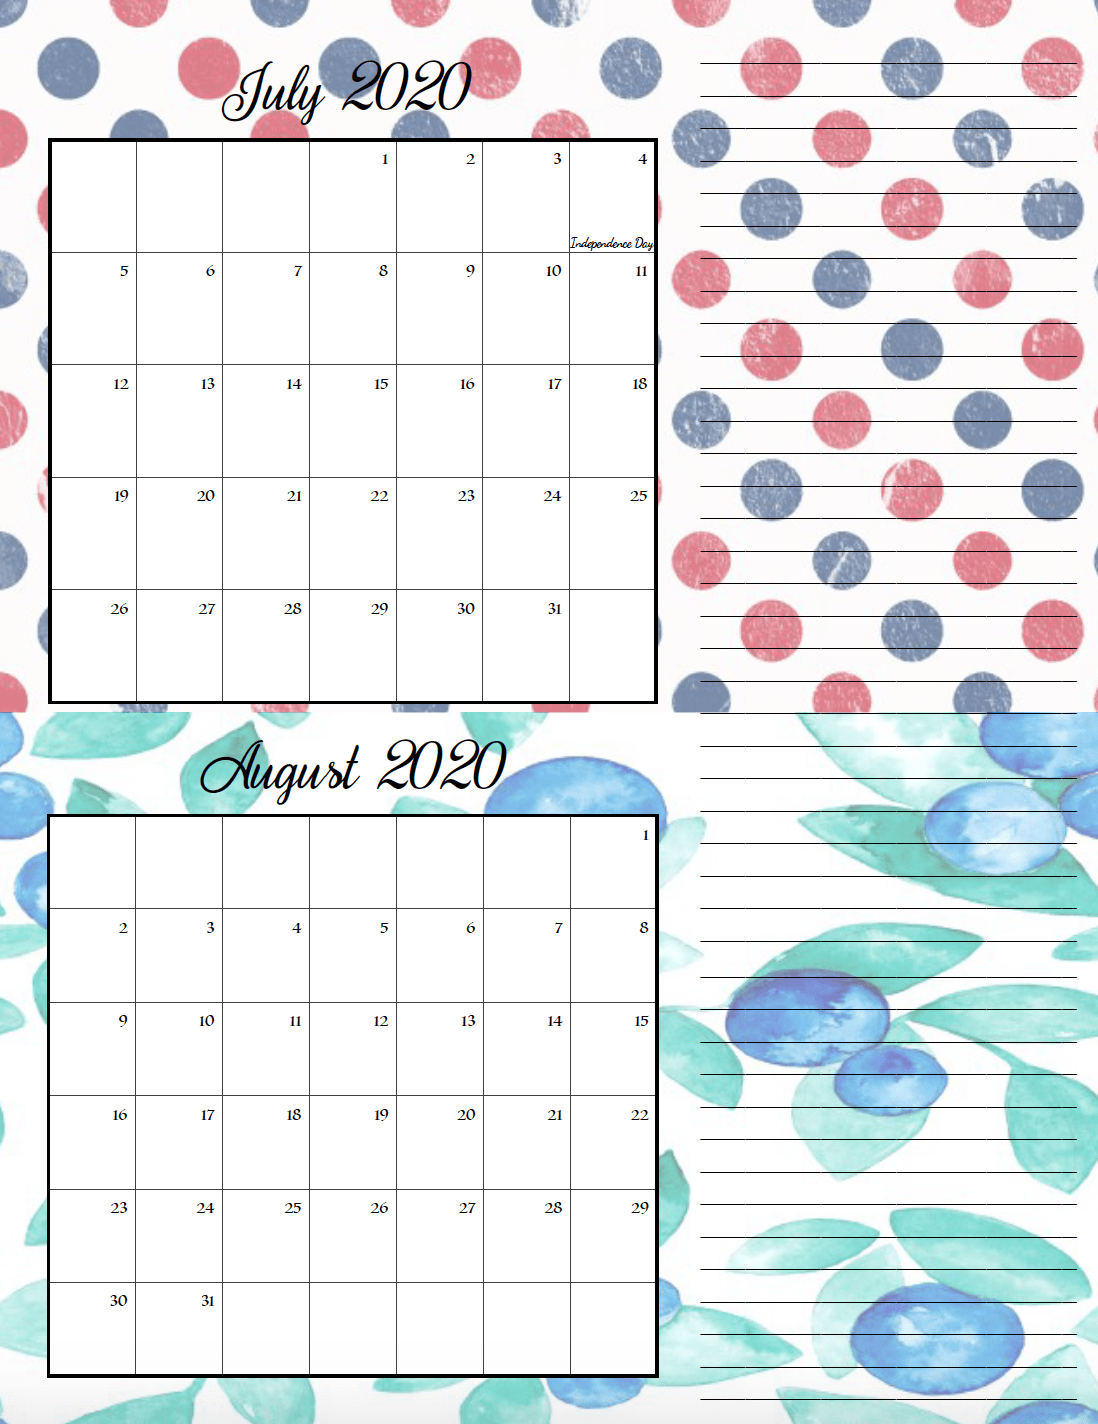 Holiday theme July/August bimonthly calendar.